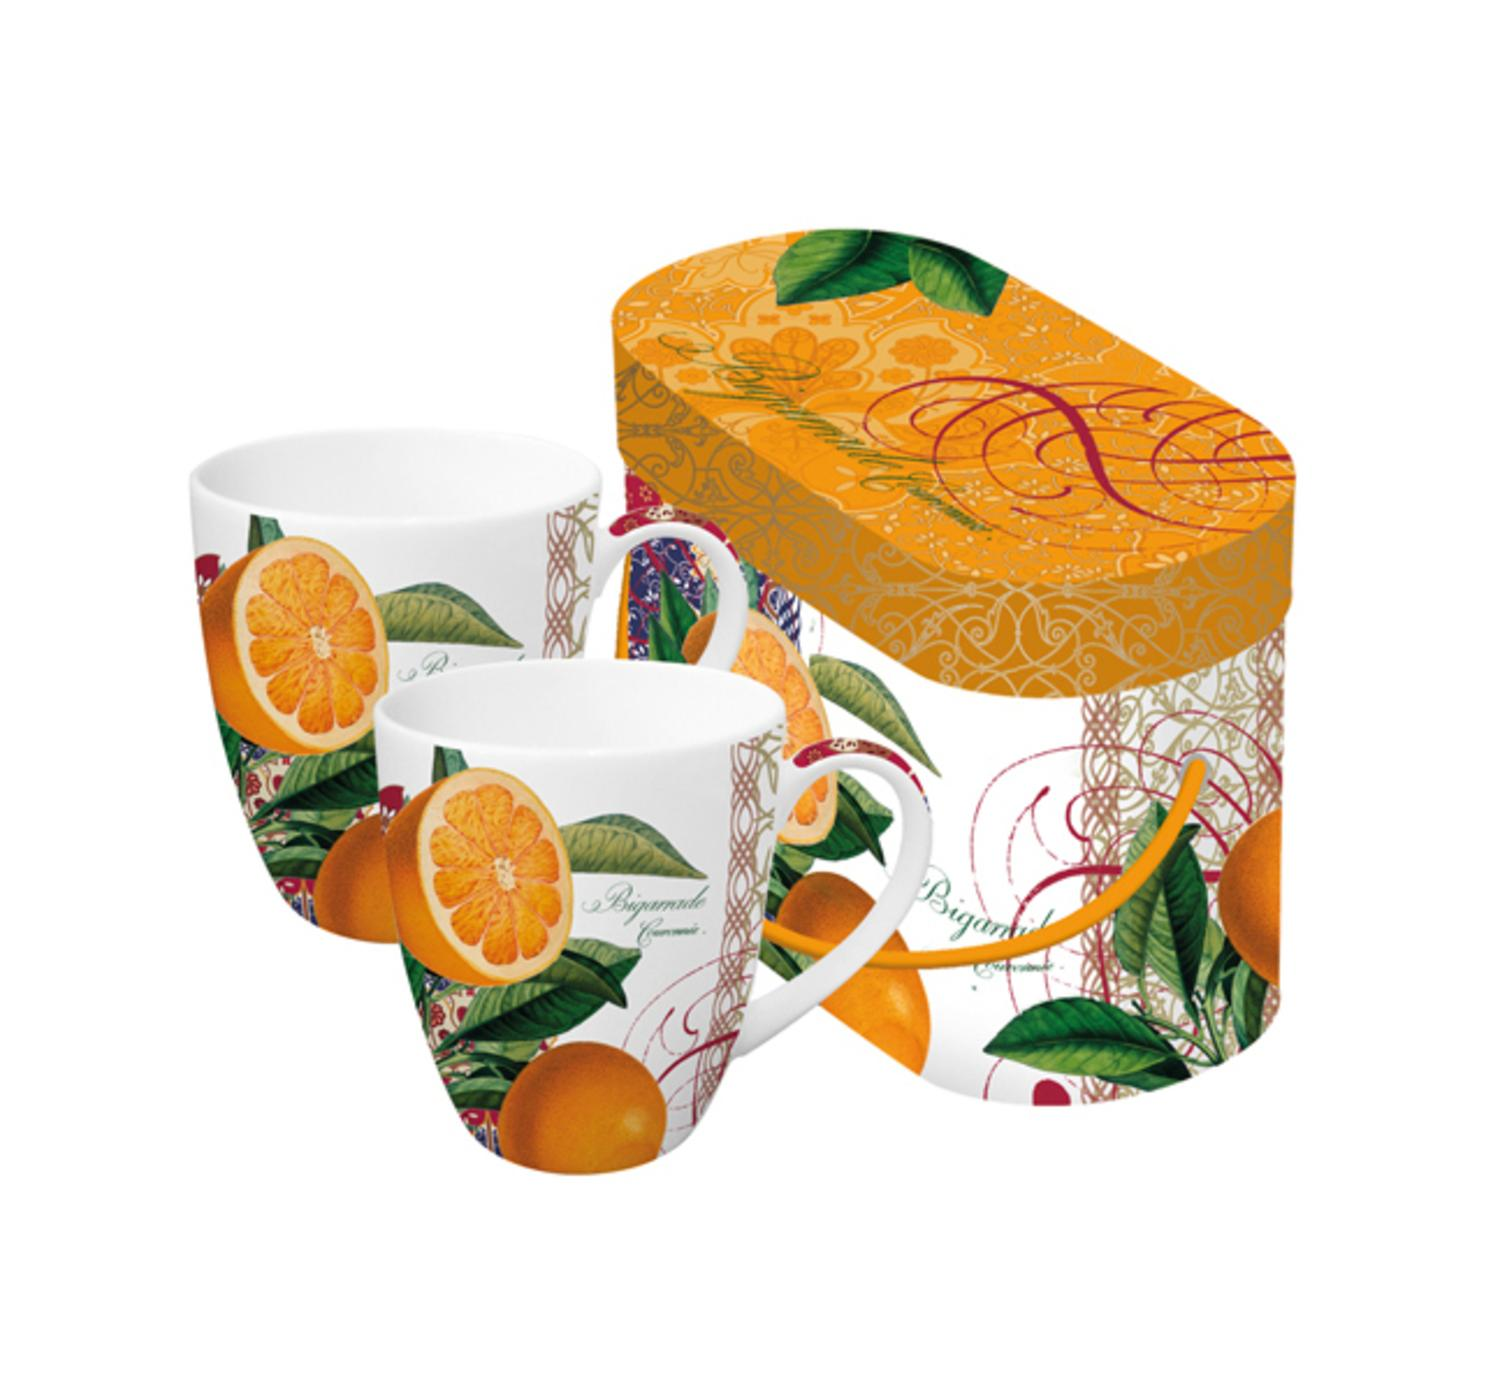 Set of 2 Valencia Orange Bigarrade Couronnée Porcelain Coffee Mugs with Gift Box - 14 ounces